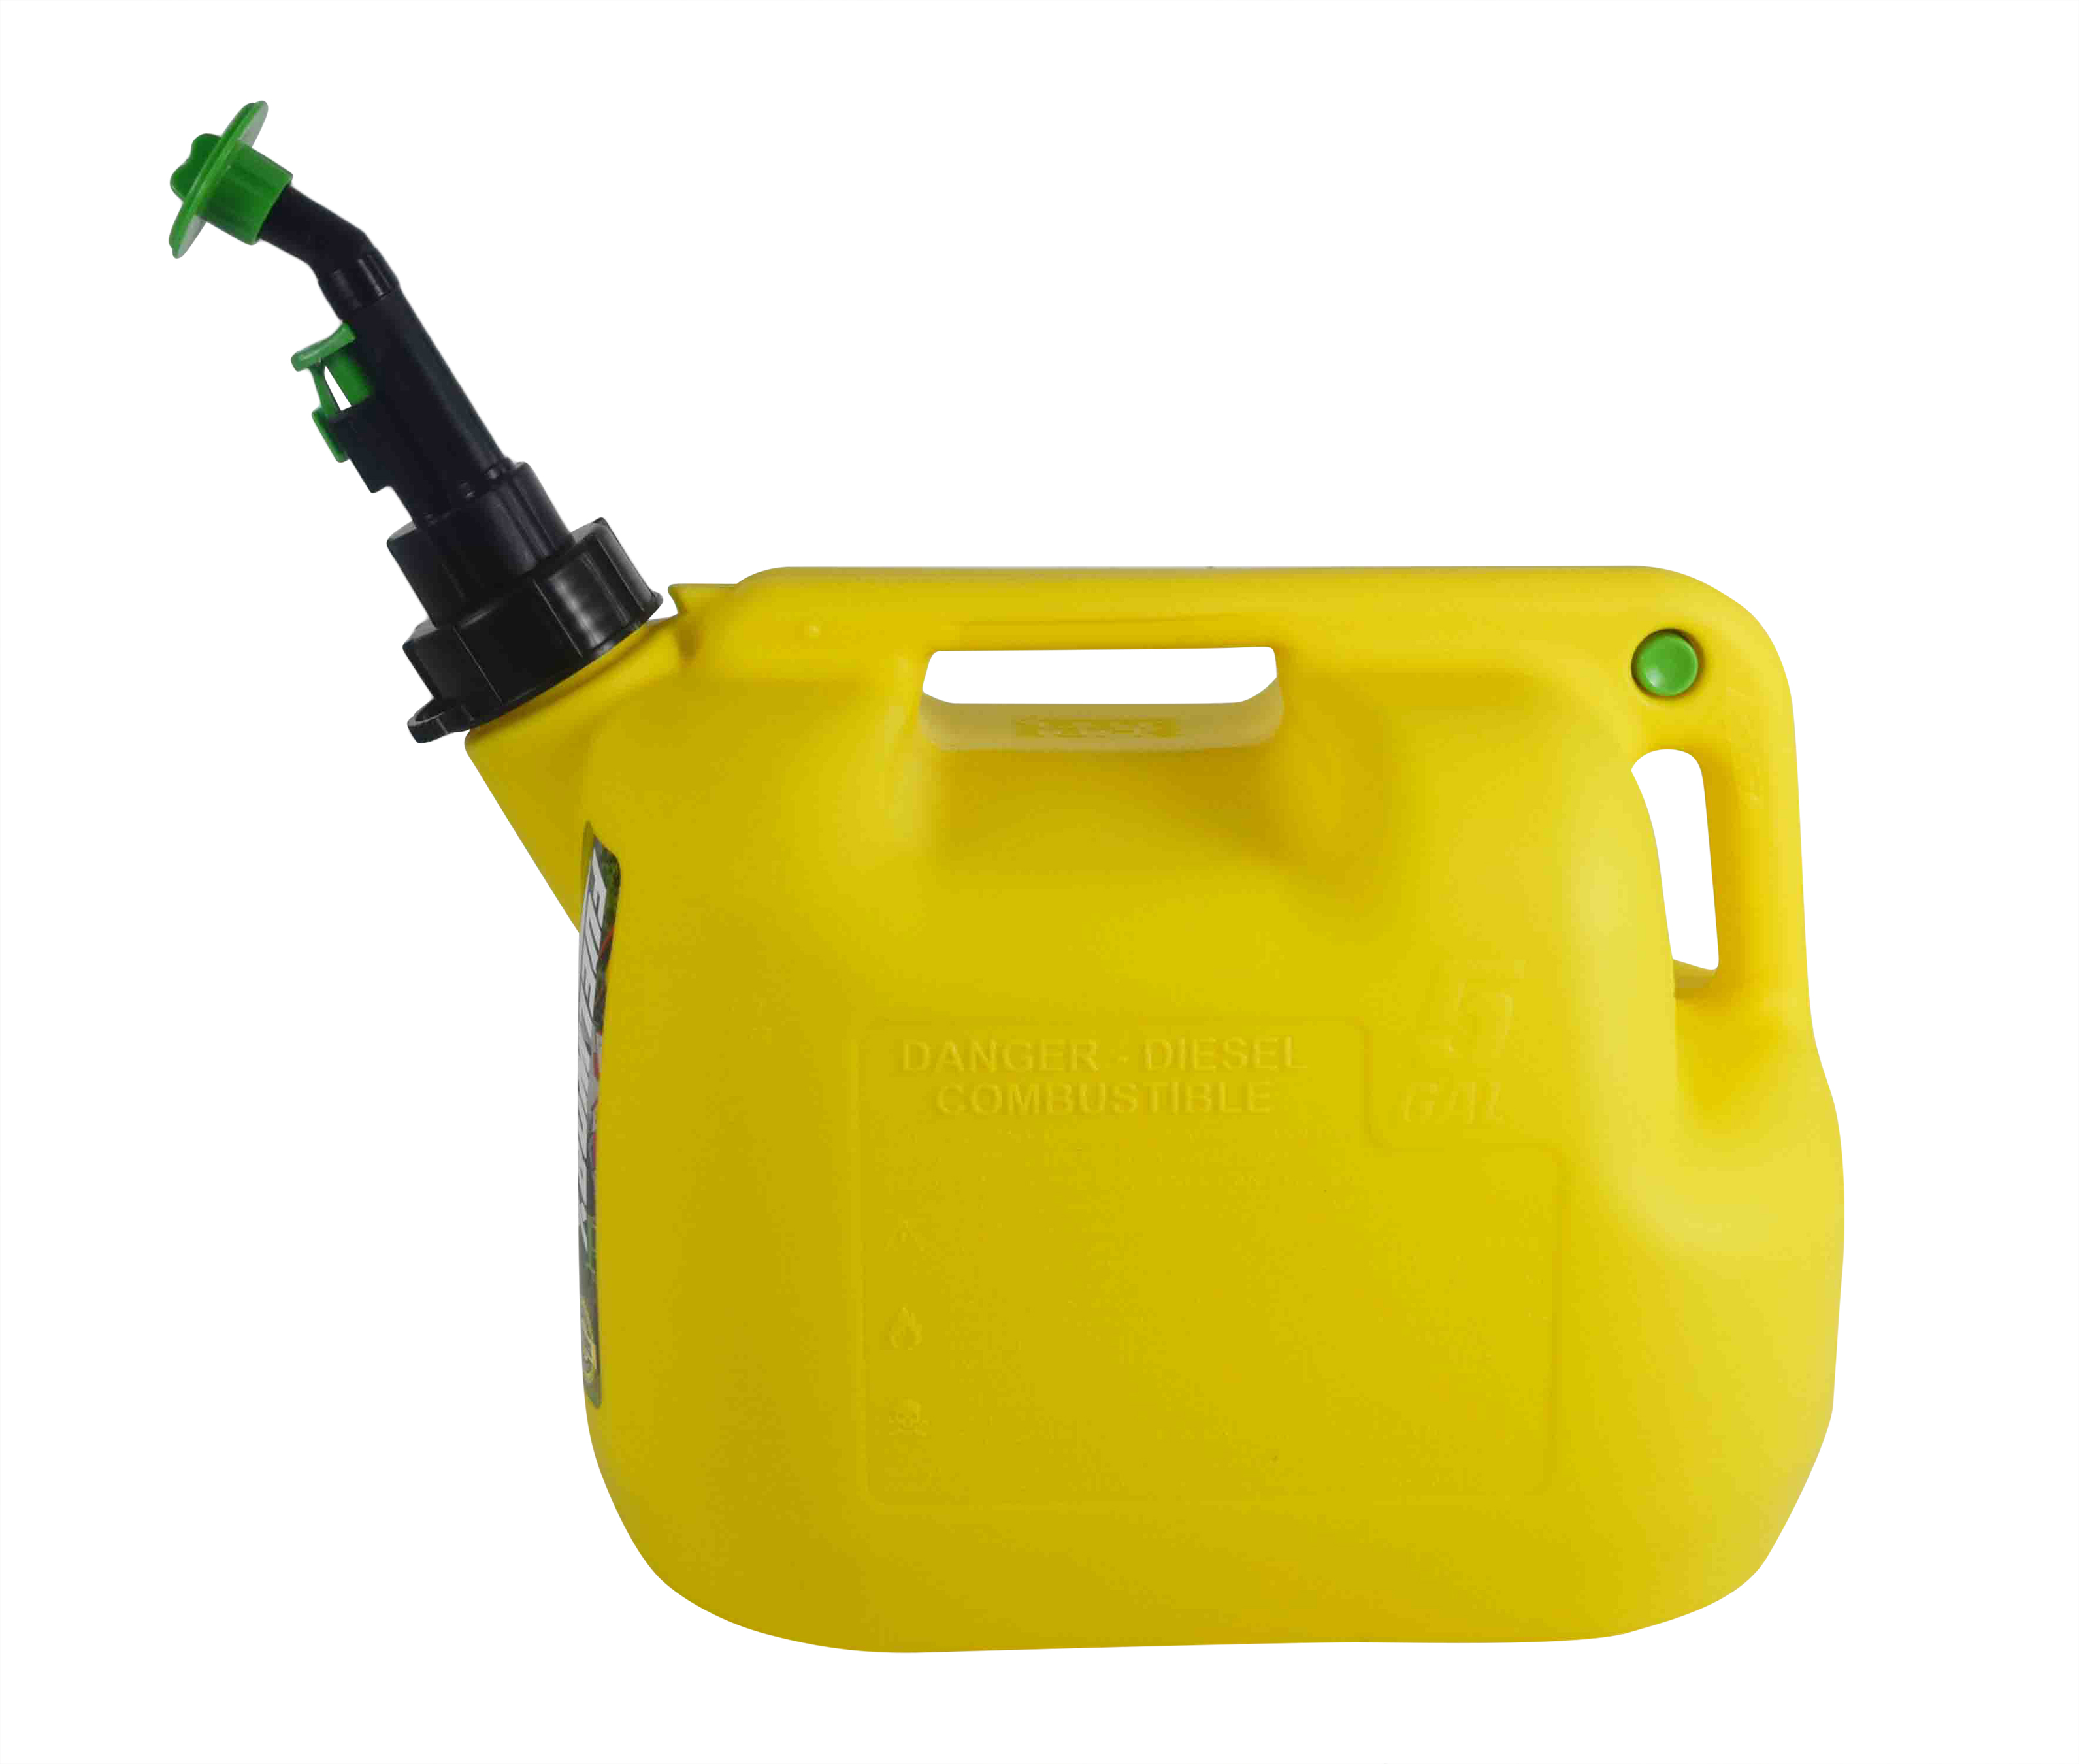 Fuelworx-Yellow-5-Gallon-Stackable-Fast-Pour-Diesel-Fuel-Cans-CARB-Compliant-Made-in-The-USA-5-Gallon-Diesel-Cans-Single-image-2